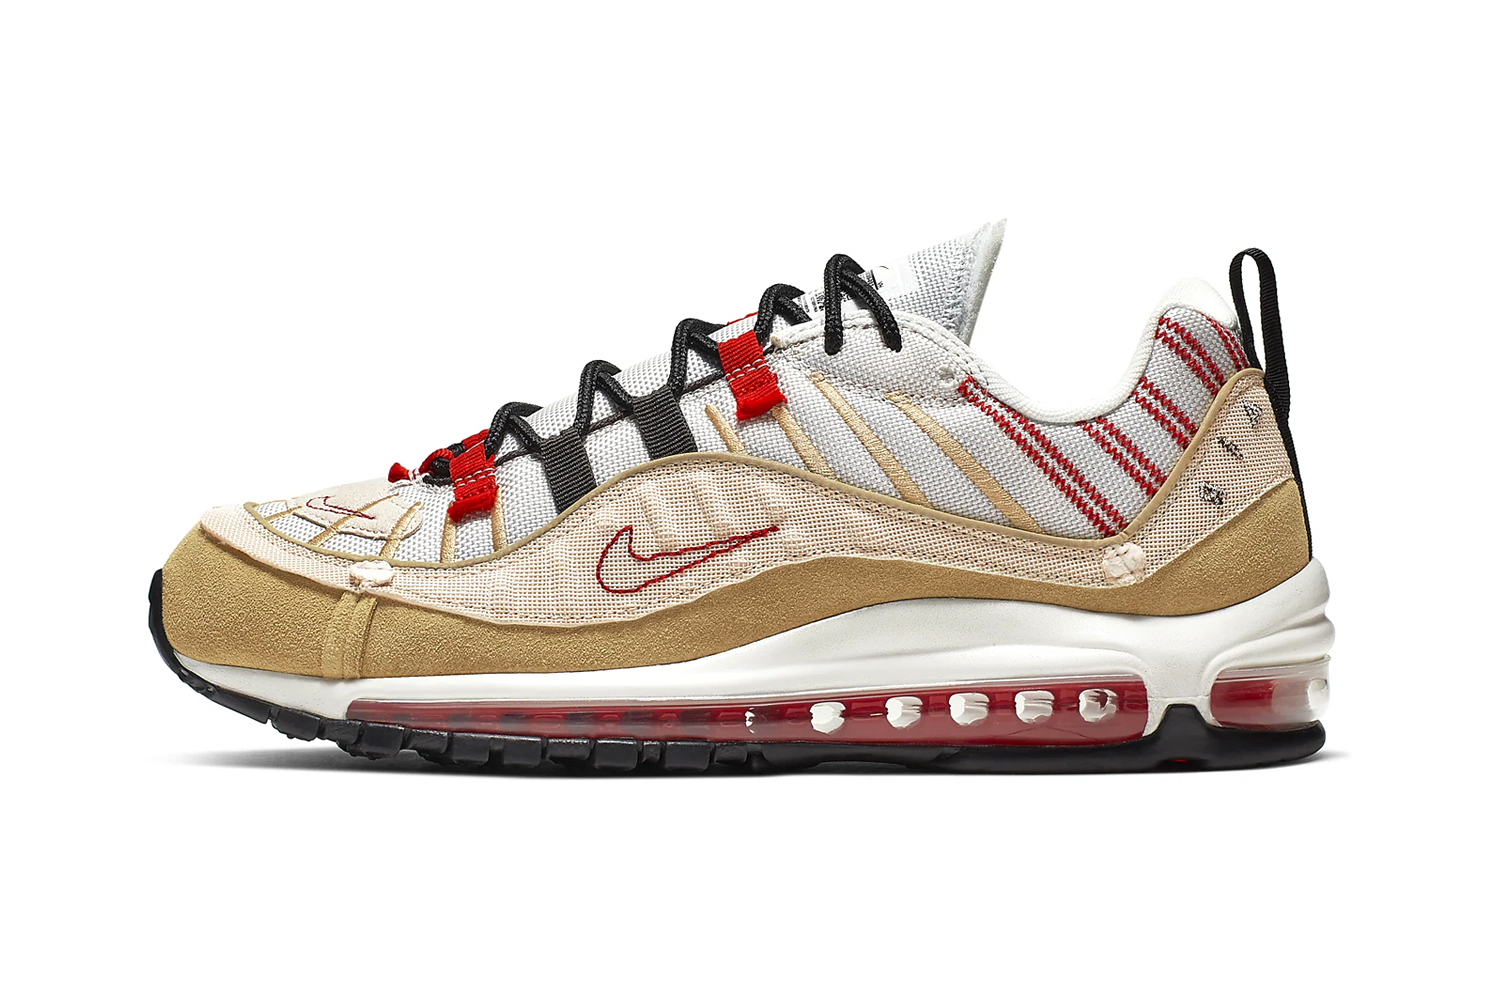 Nike Air Max 98 SE Inside-Out Desert Sand University Red Release ao9380-003 trainers kicks shoes sneakers nike air footwear